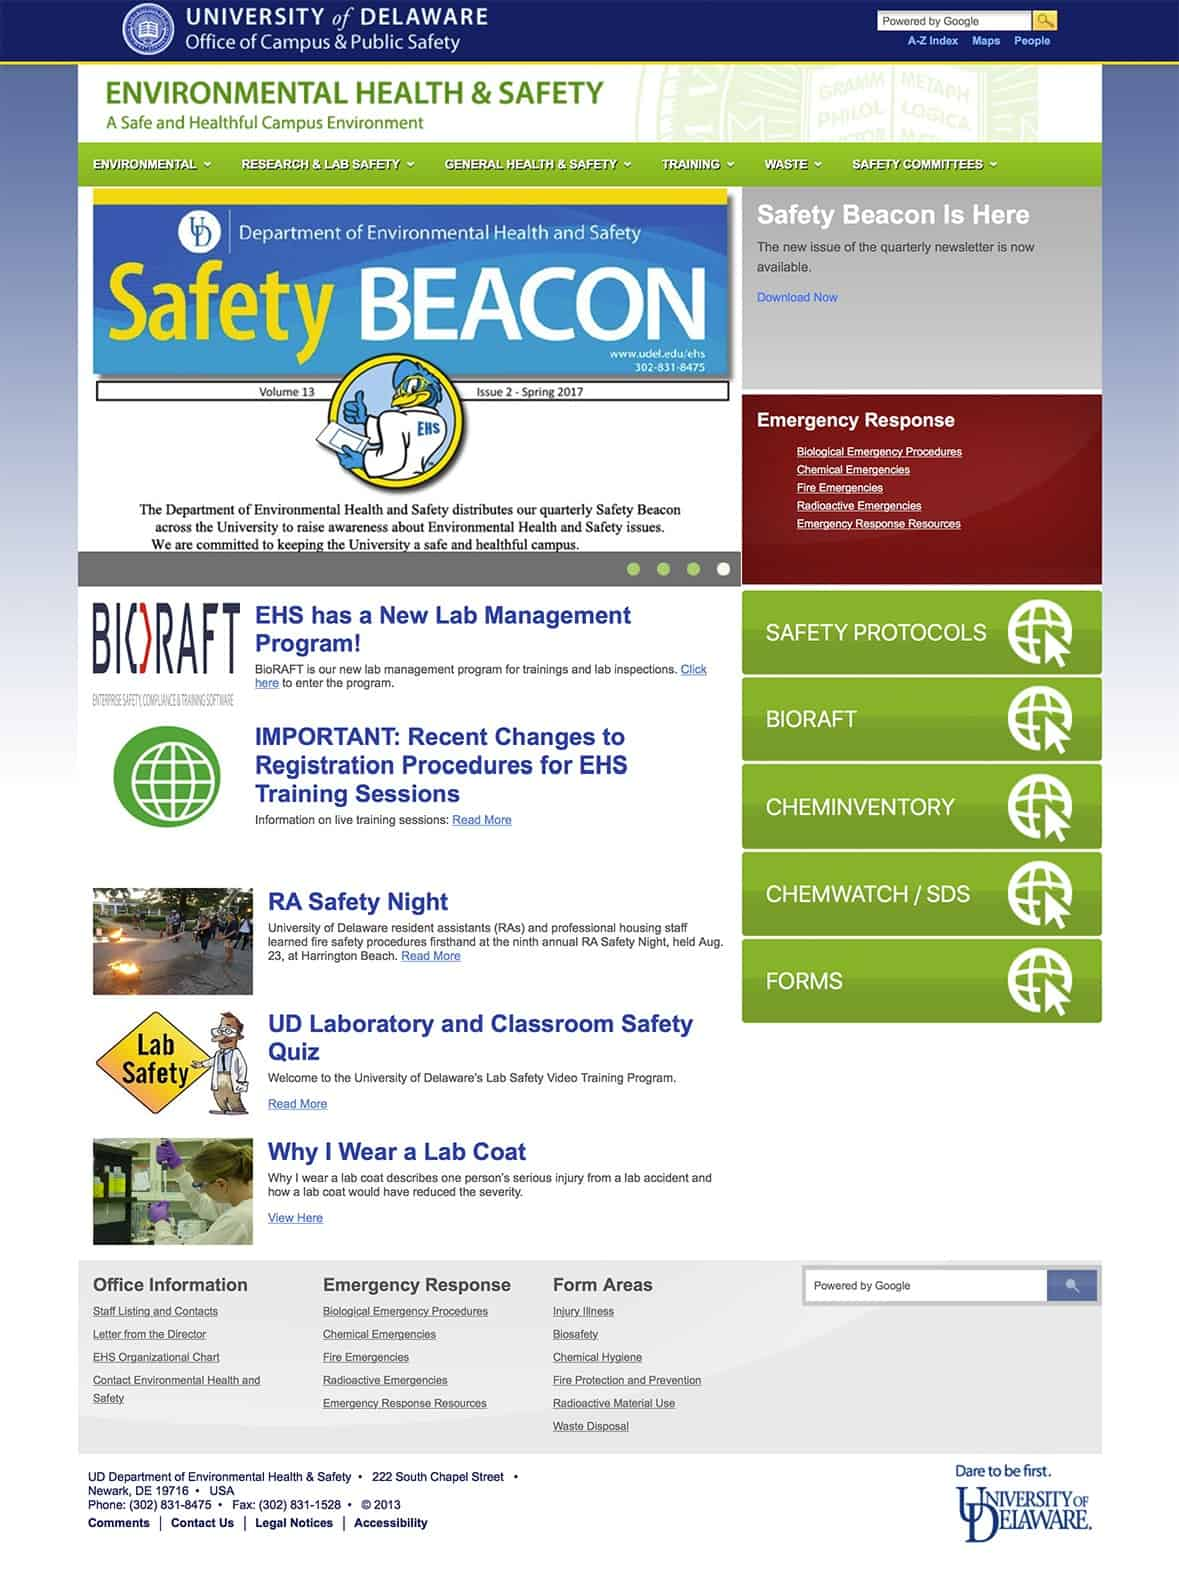 Health and Safety Website